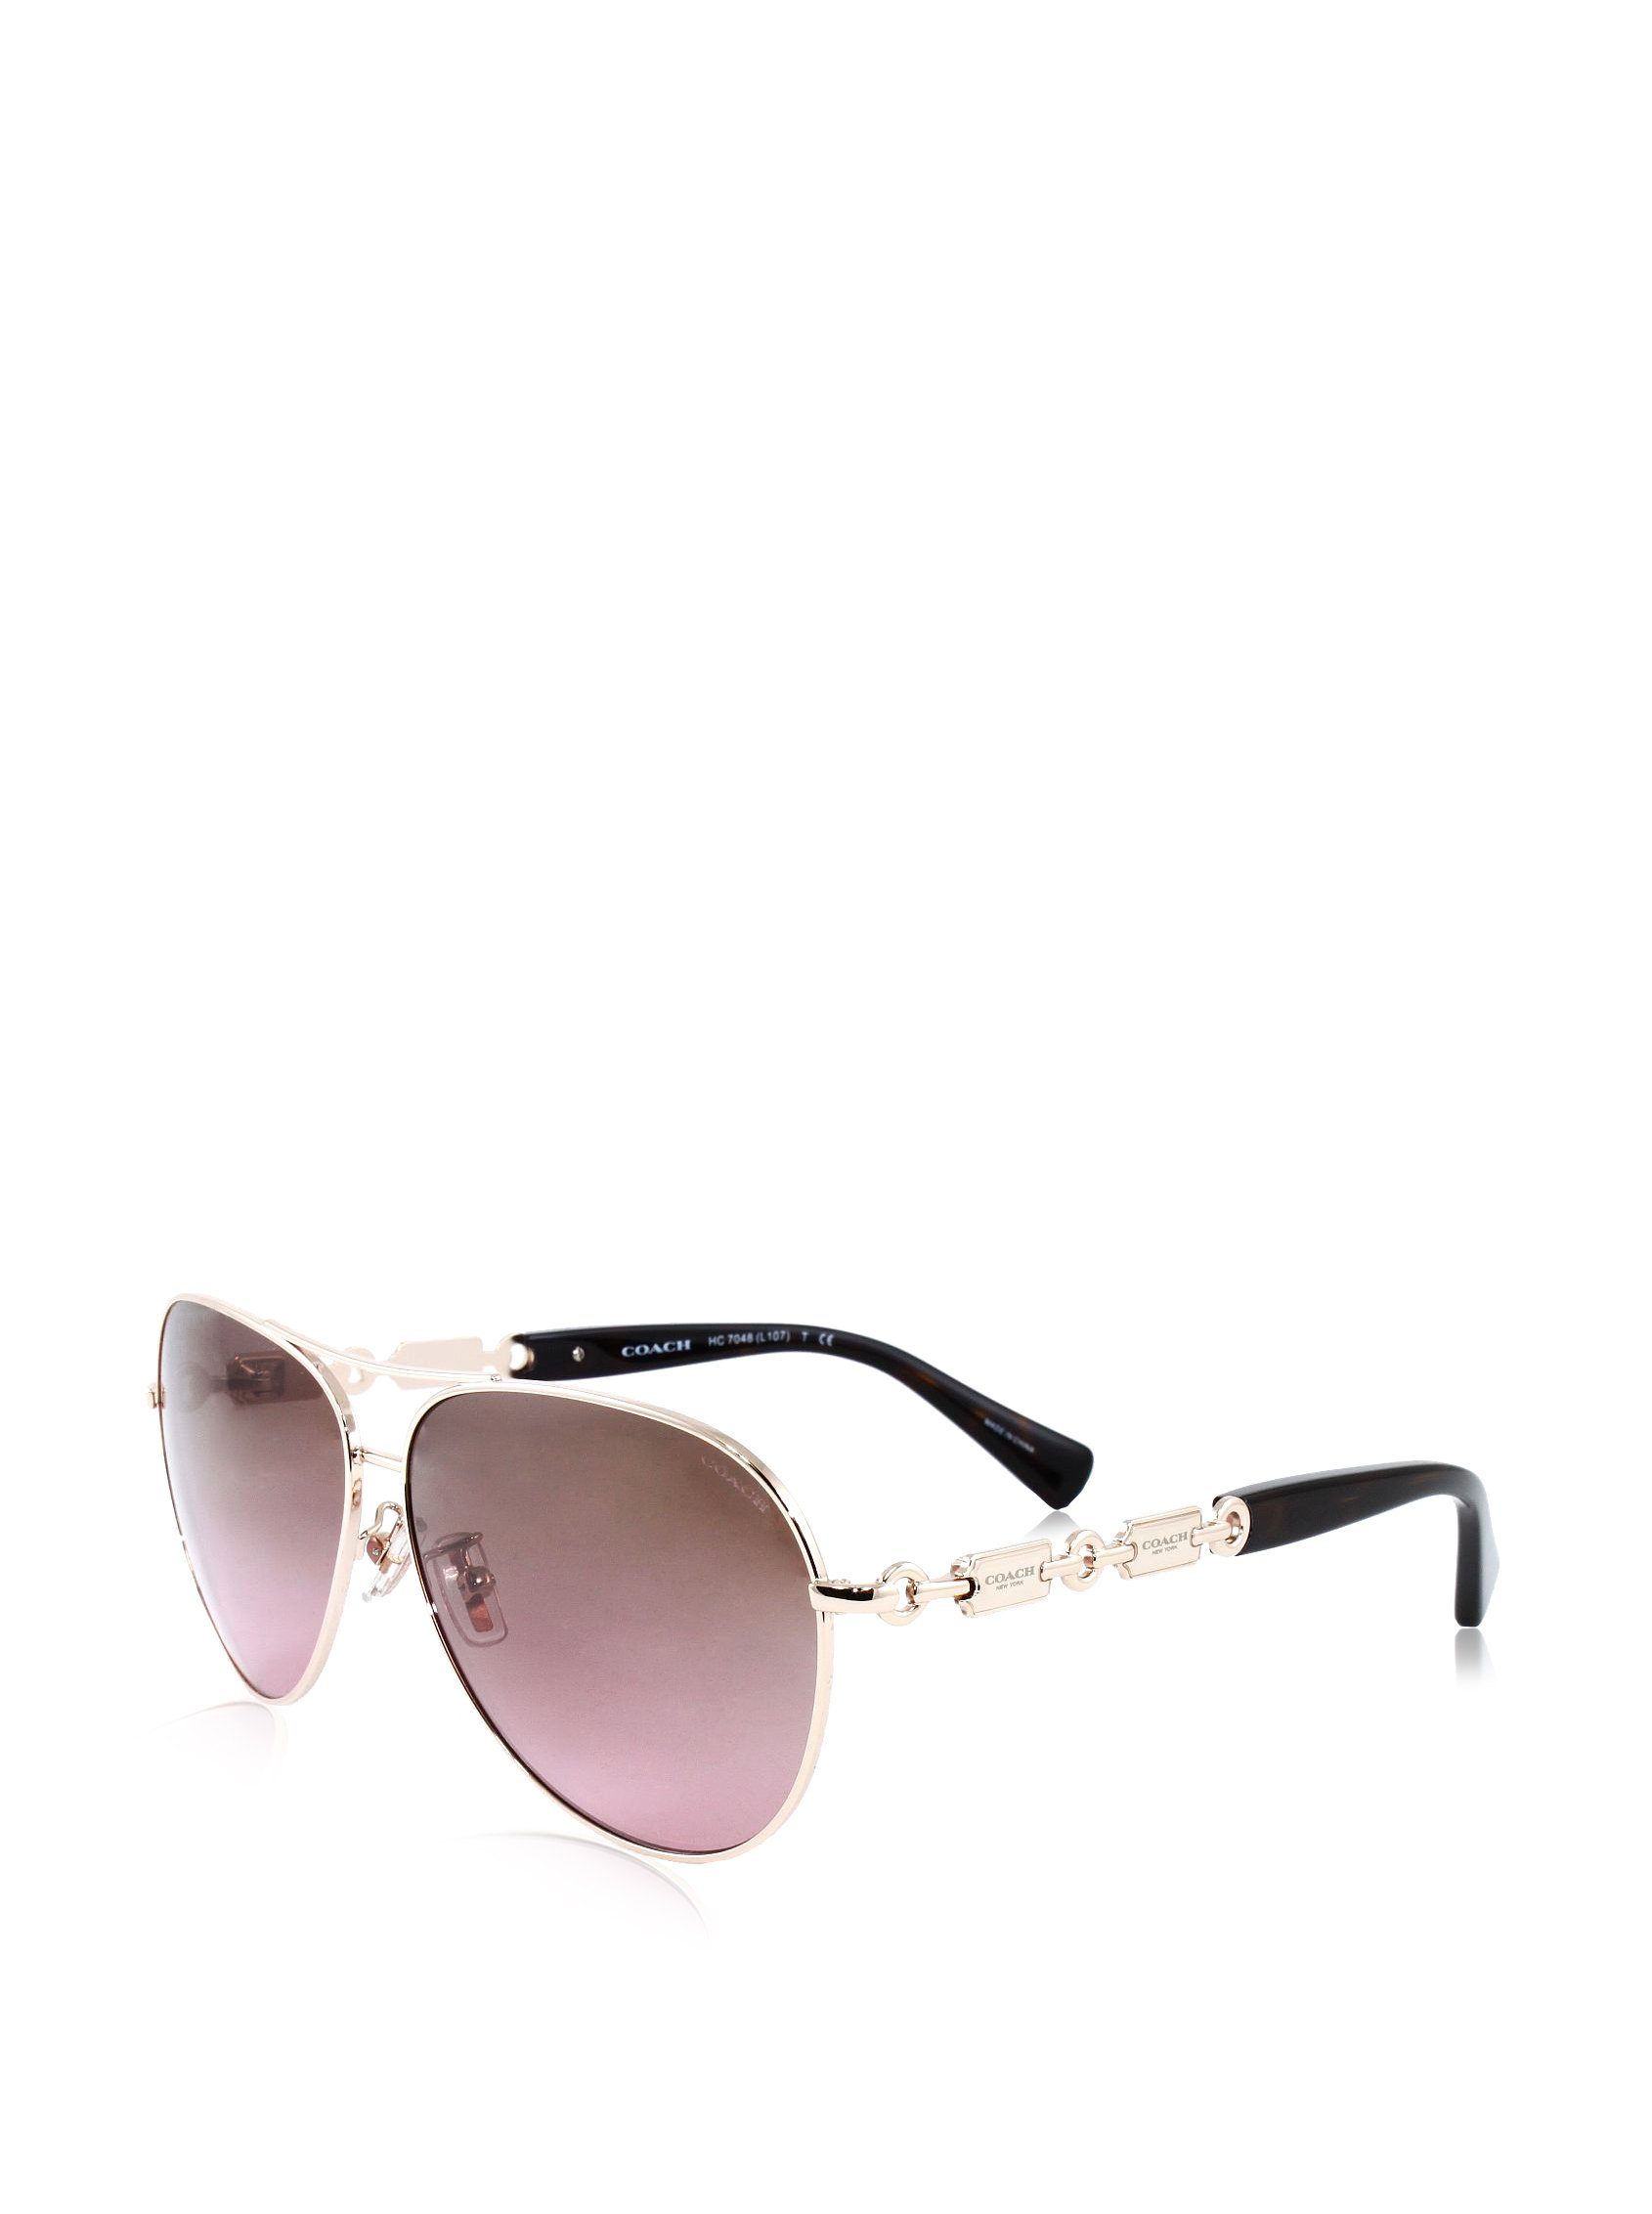 COACH Women's 0HC7048 Gold/Tortoise Sunglasses